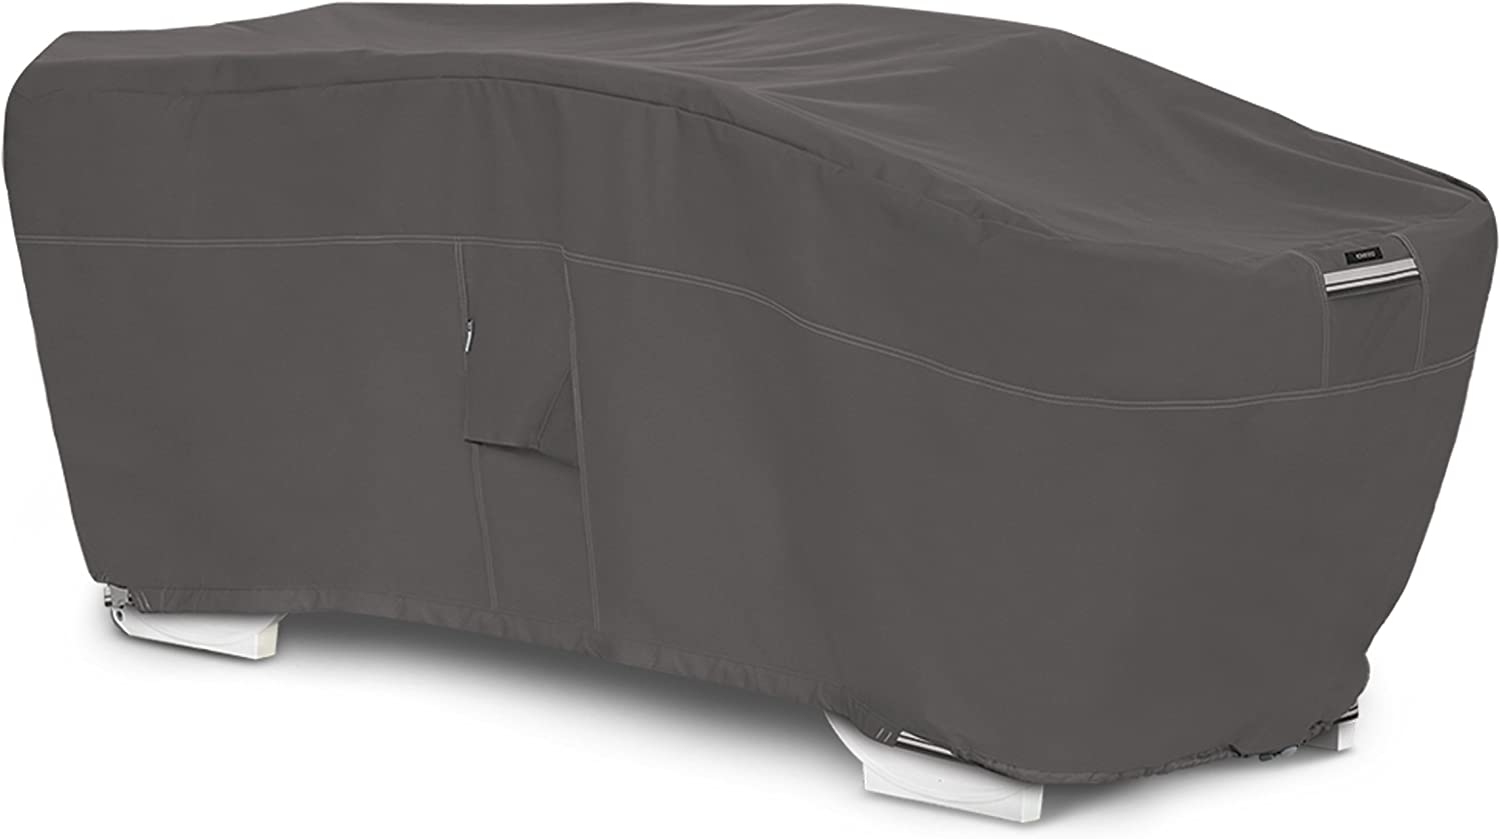 Classic Accessories Ravenna Stackable Patio Chaise Lounge Cover, 6 High